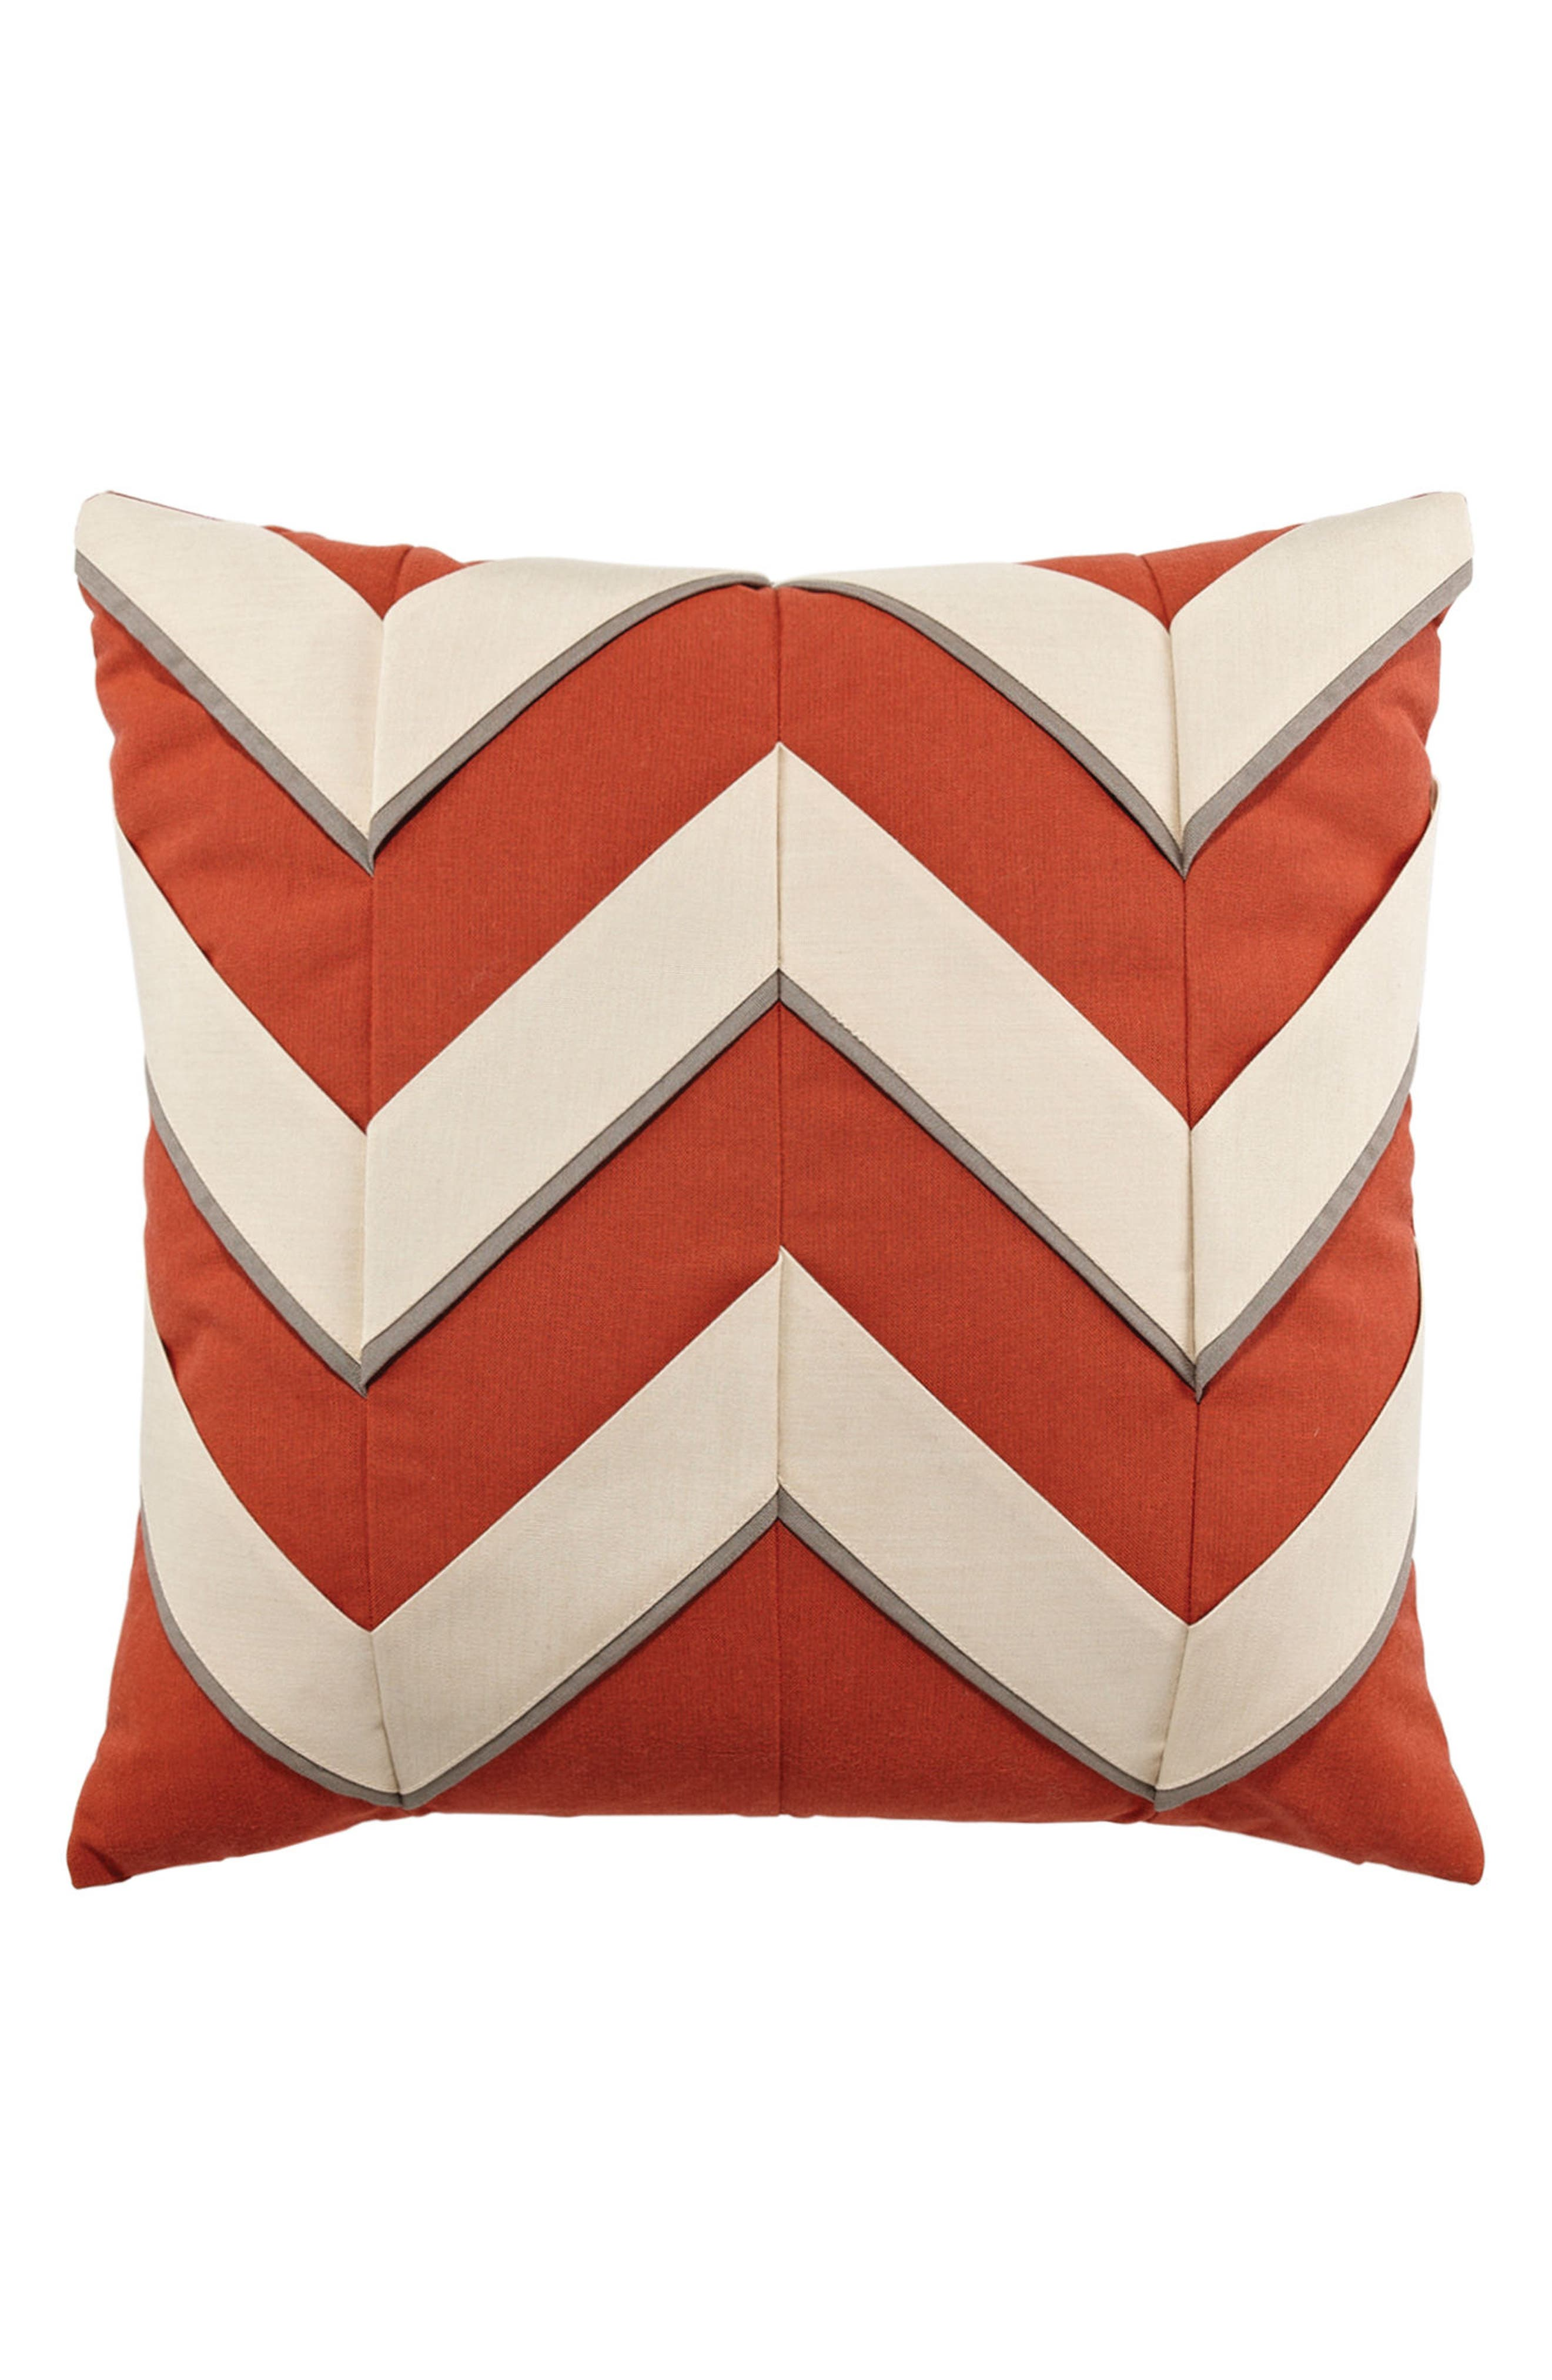 ELAINE SMITH,                             Coral Cruise Indoor/Outdoor Accent Pillow,                             Main thumbnail 1, color,                             800